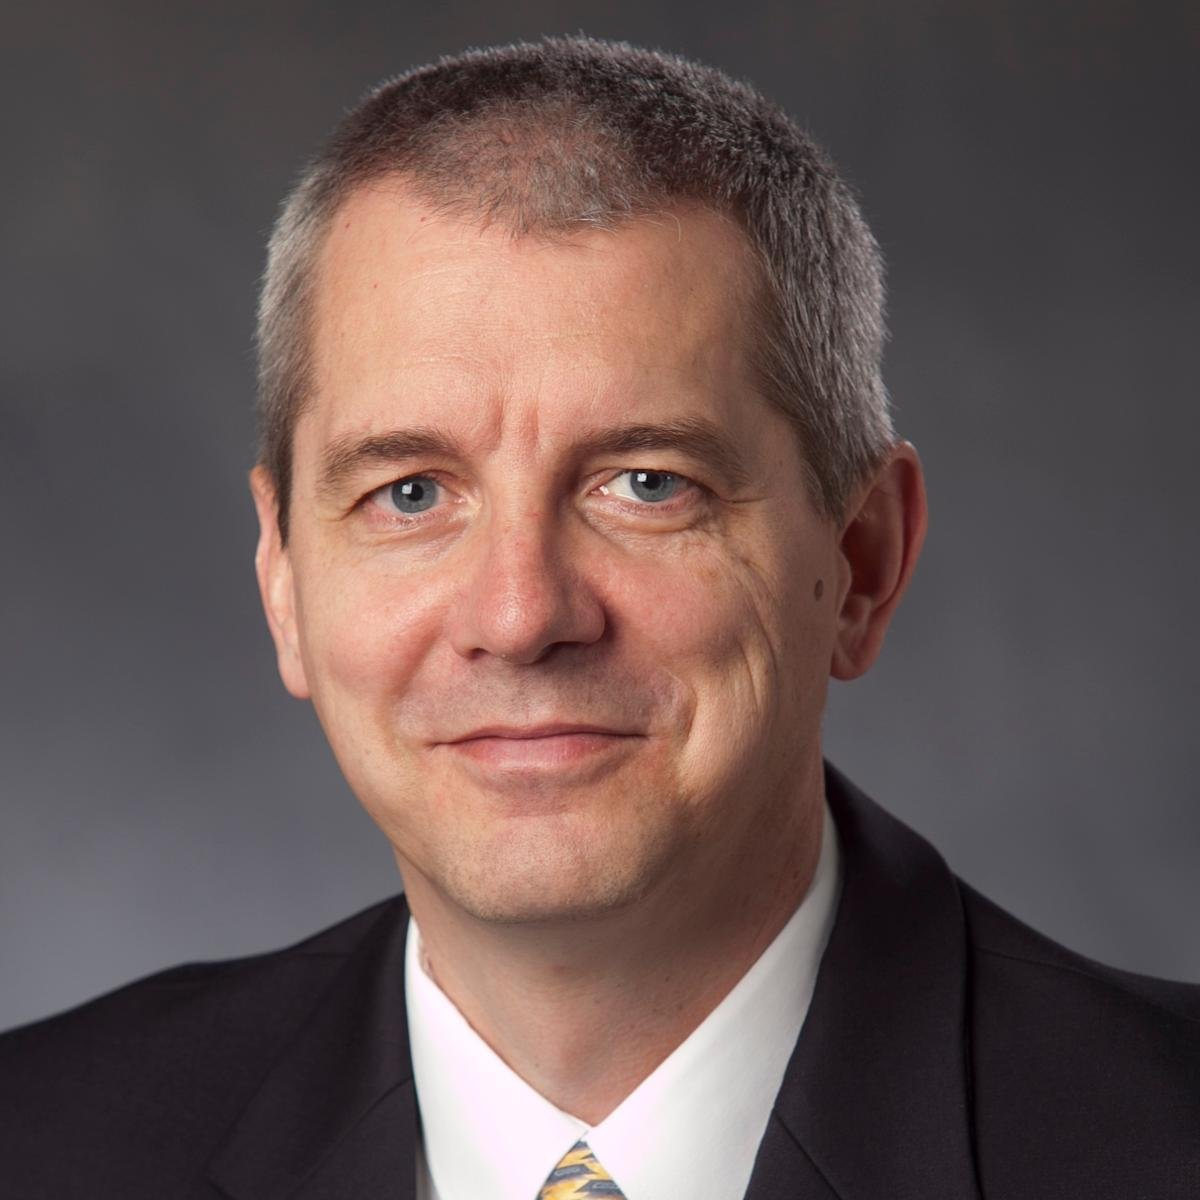 Mike Reiman, PT, PhD, ATC - is an active clinical researcher, educator and mentor. He serves as an Assistant Professor in the Duke Doctor of Physical Therapy program, writes textbooks, blogs is prolific on social media and even teaches weekend workshops. You can catch him in beautiful Santa Barbara, CA, on December 7-8, 2019.